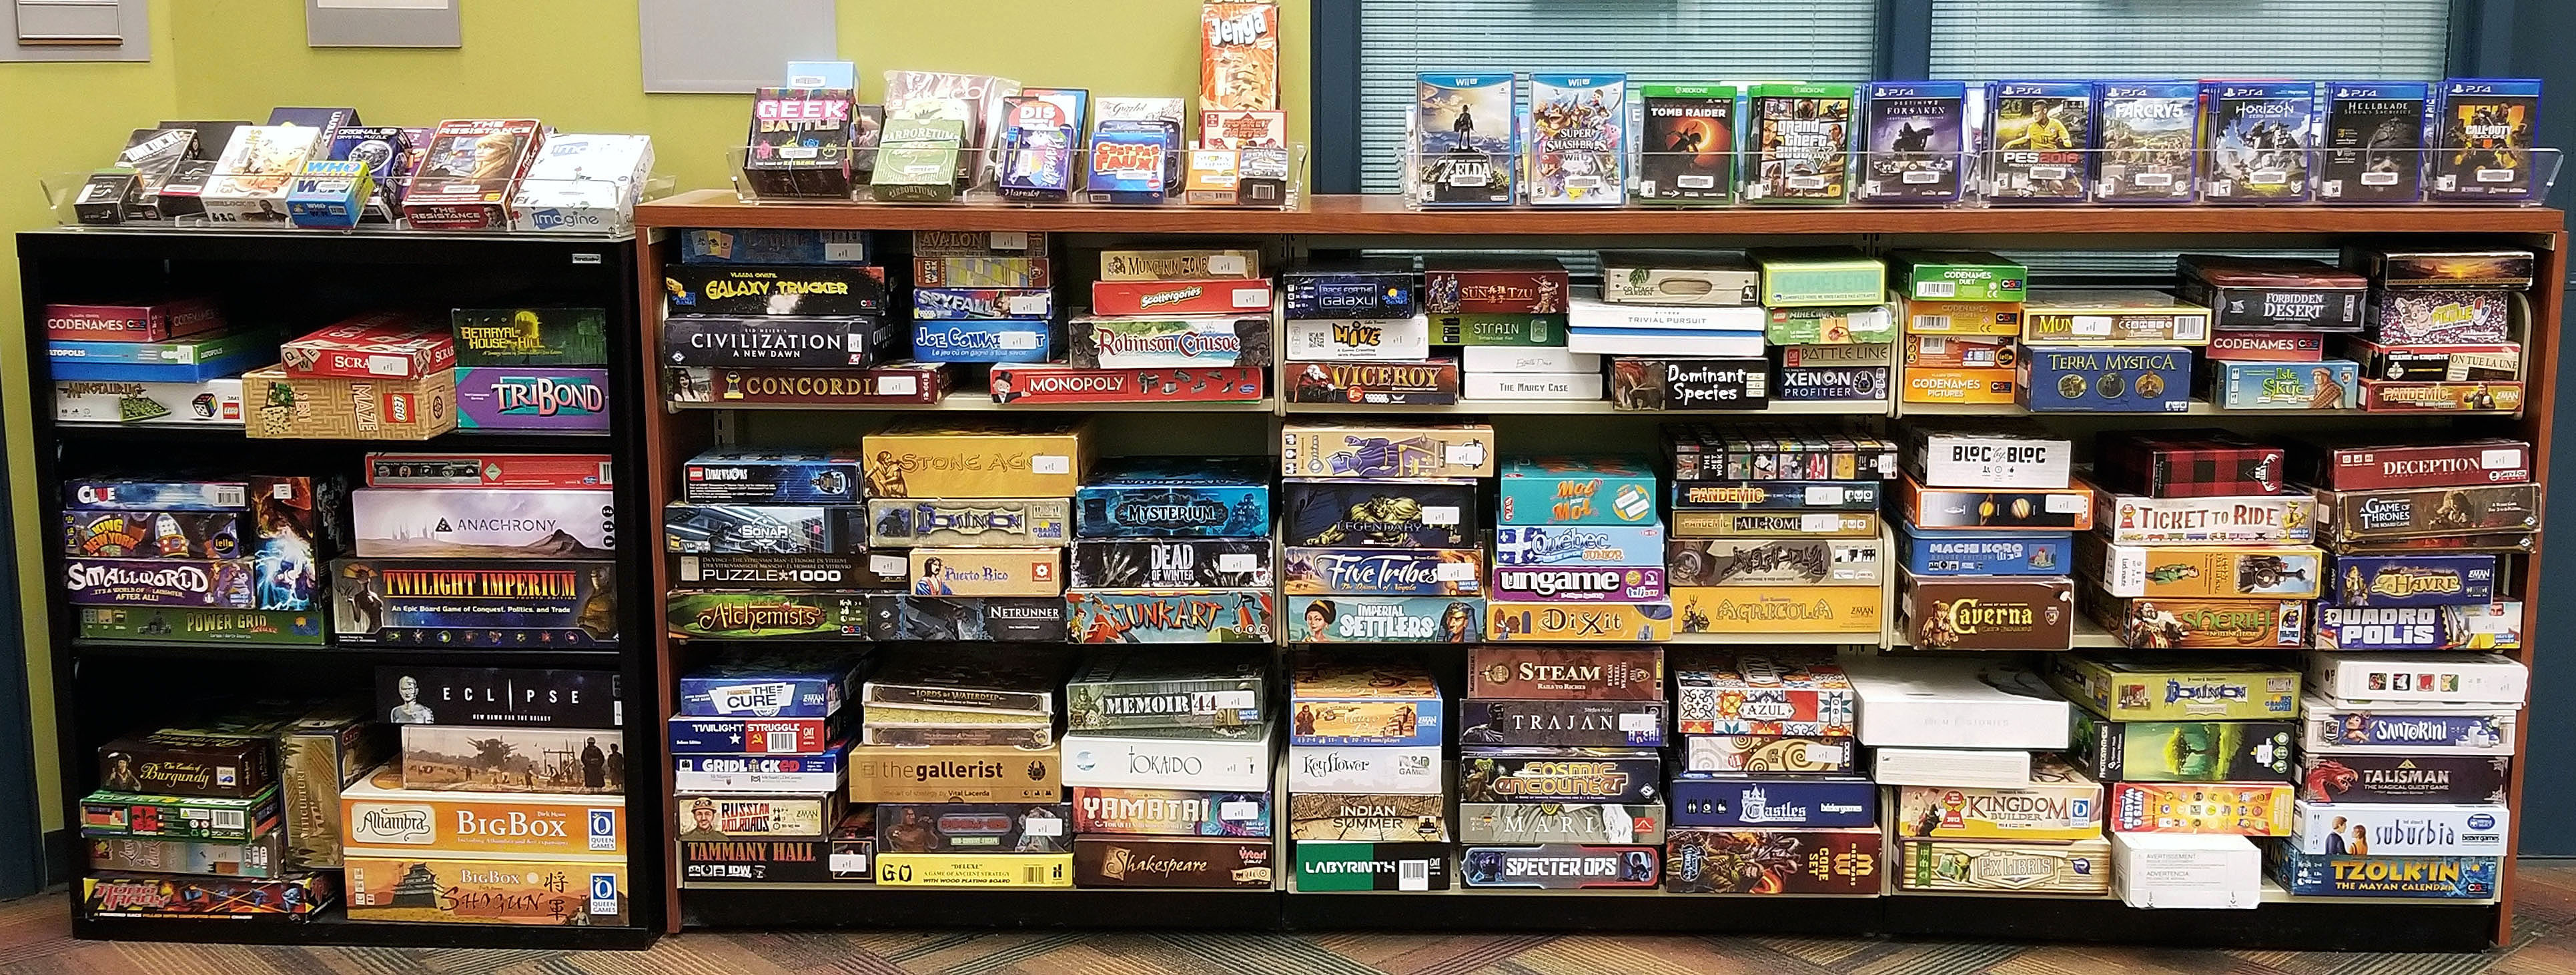 The Library's video game and board game collection.